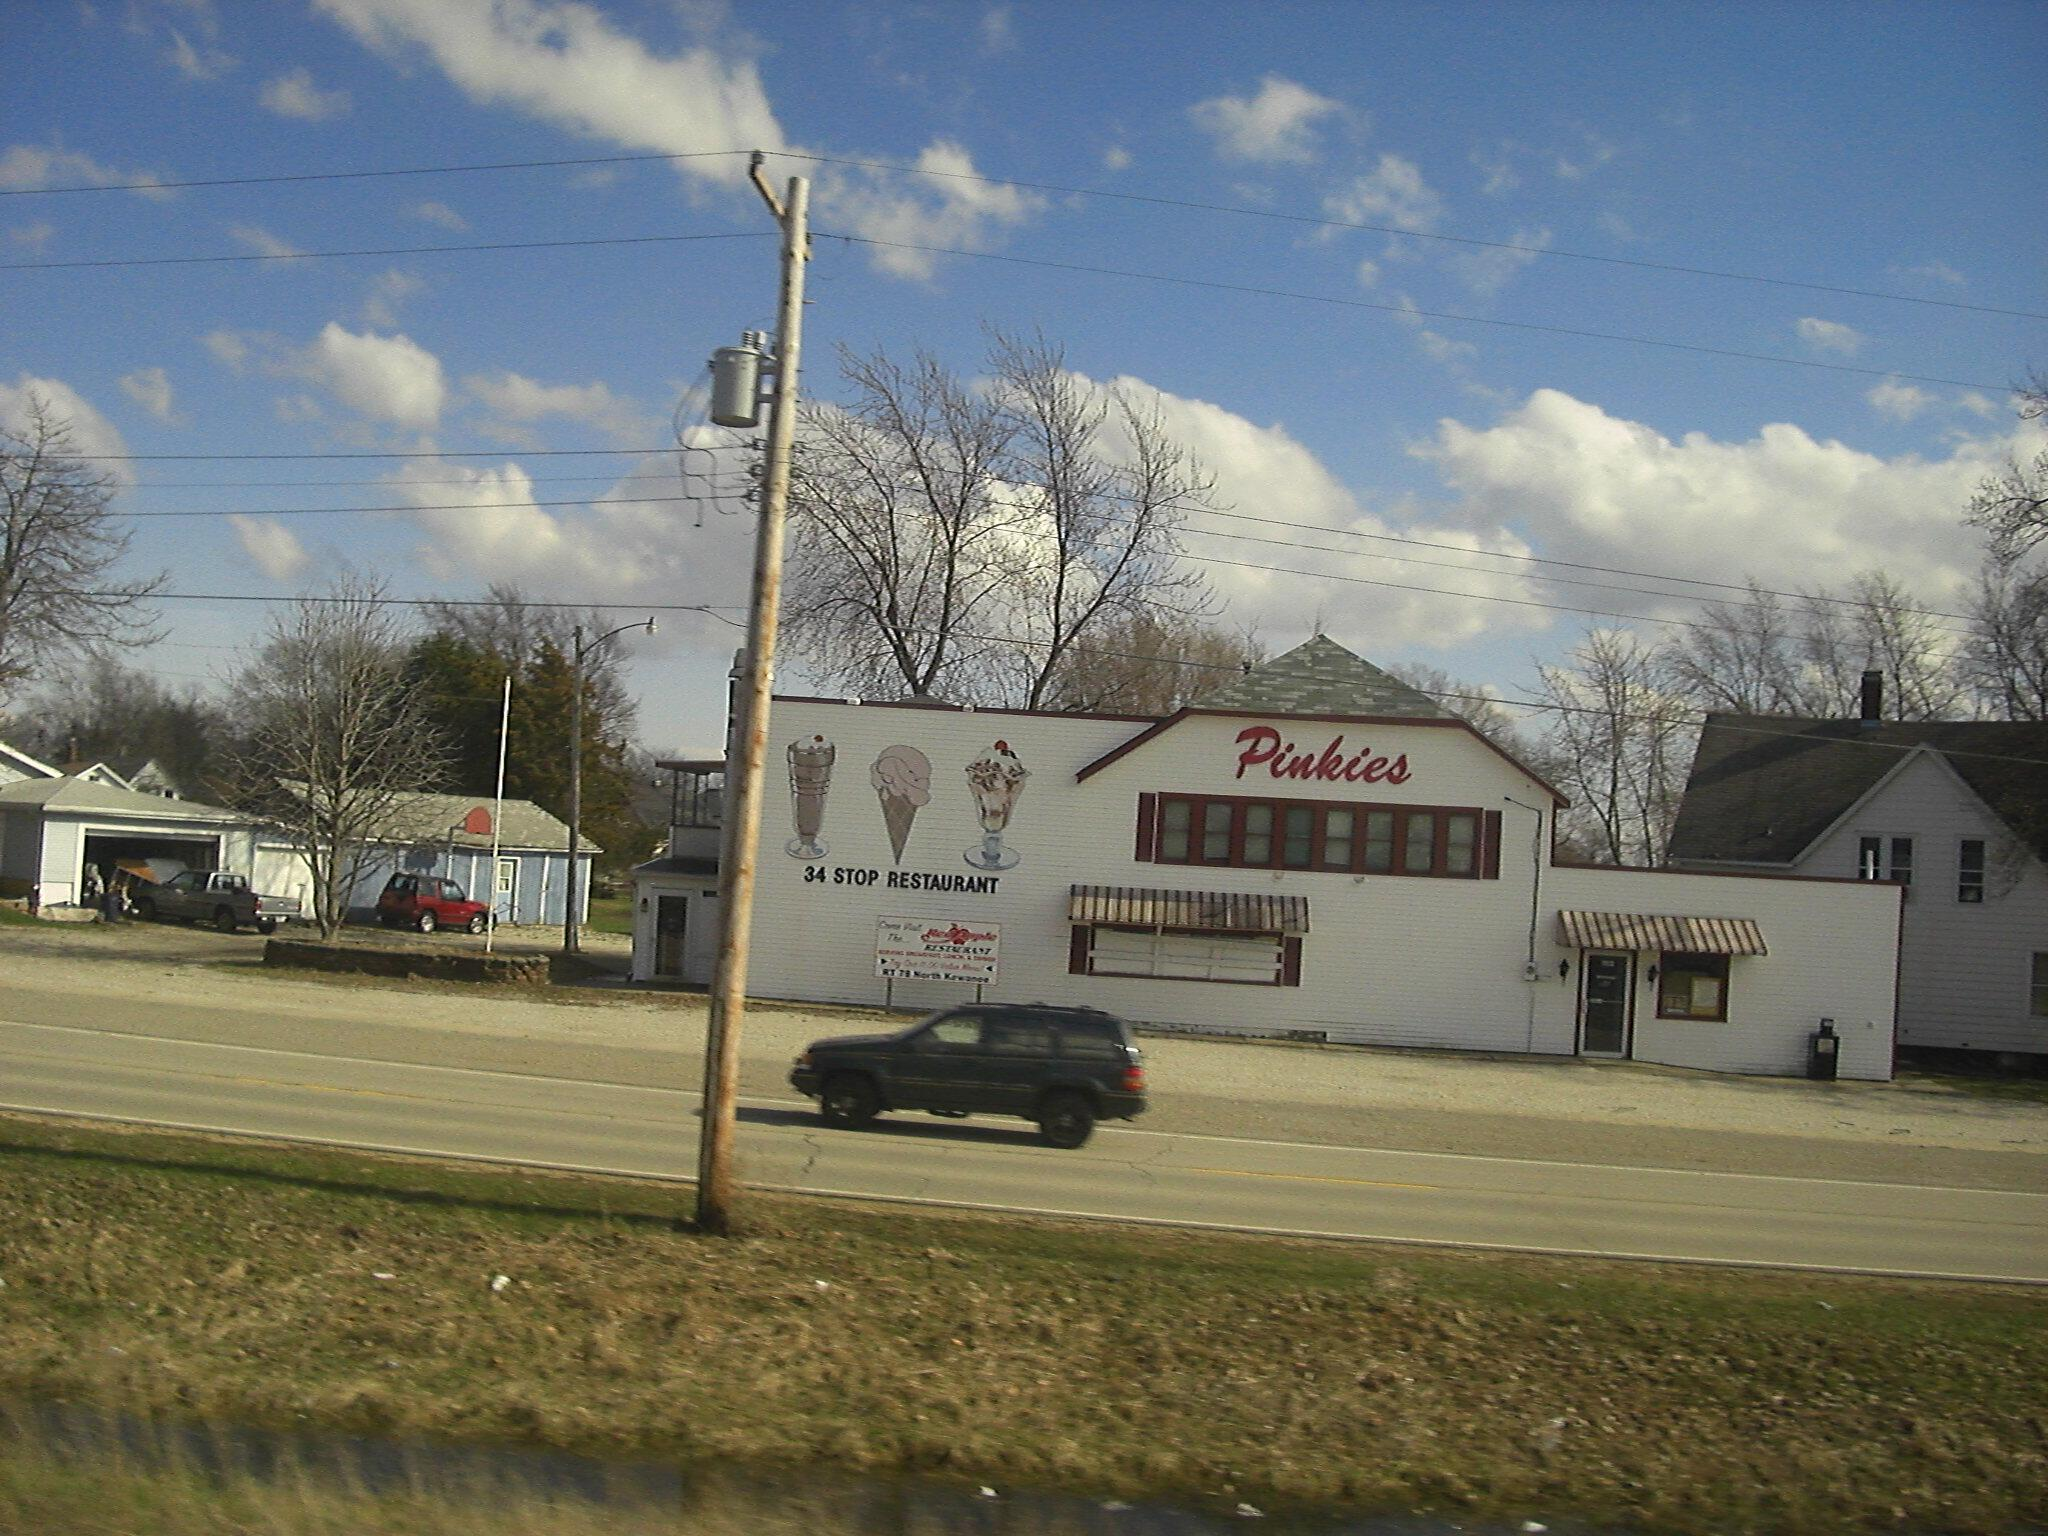 Pinkies 34 Stop Kewanee Illinois